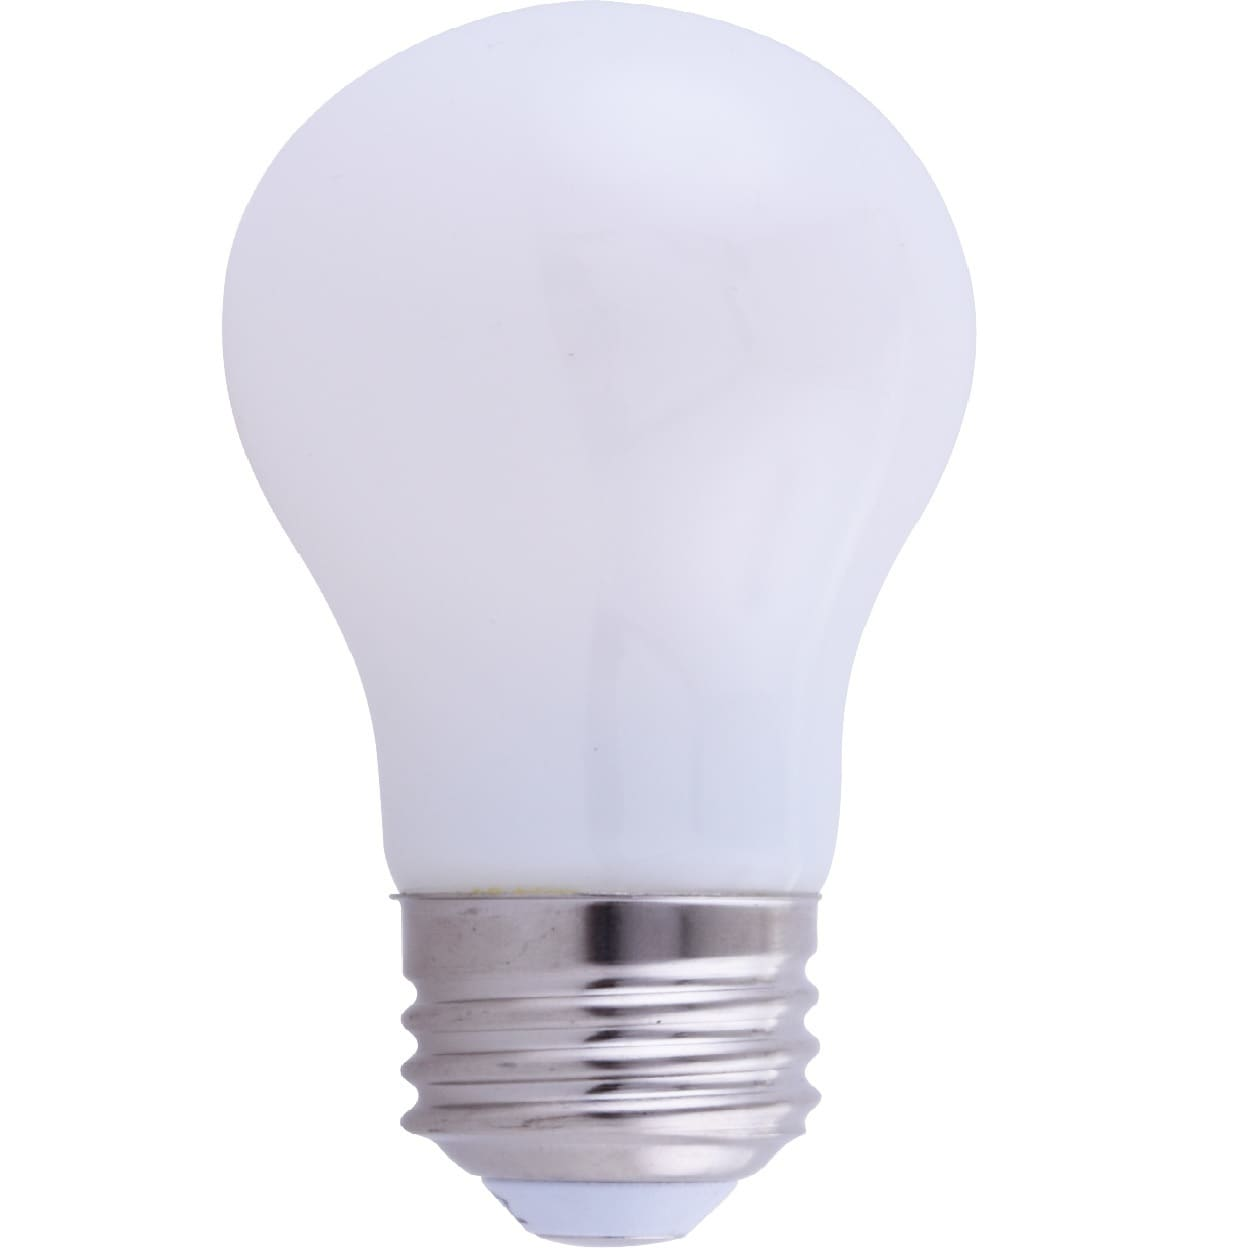 60w Light Bulb Goodlite 5w A15 Led Appliance Light Bulb 500 Lumens E26 Base 60w Equivalent Frosted Dimmable 5 Pack